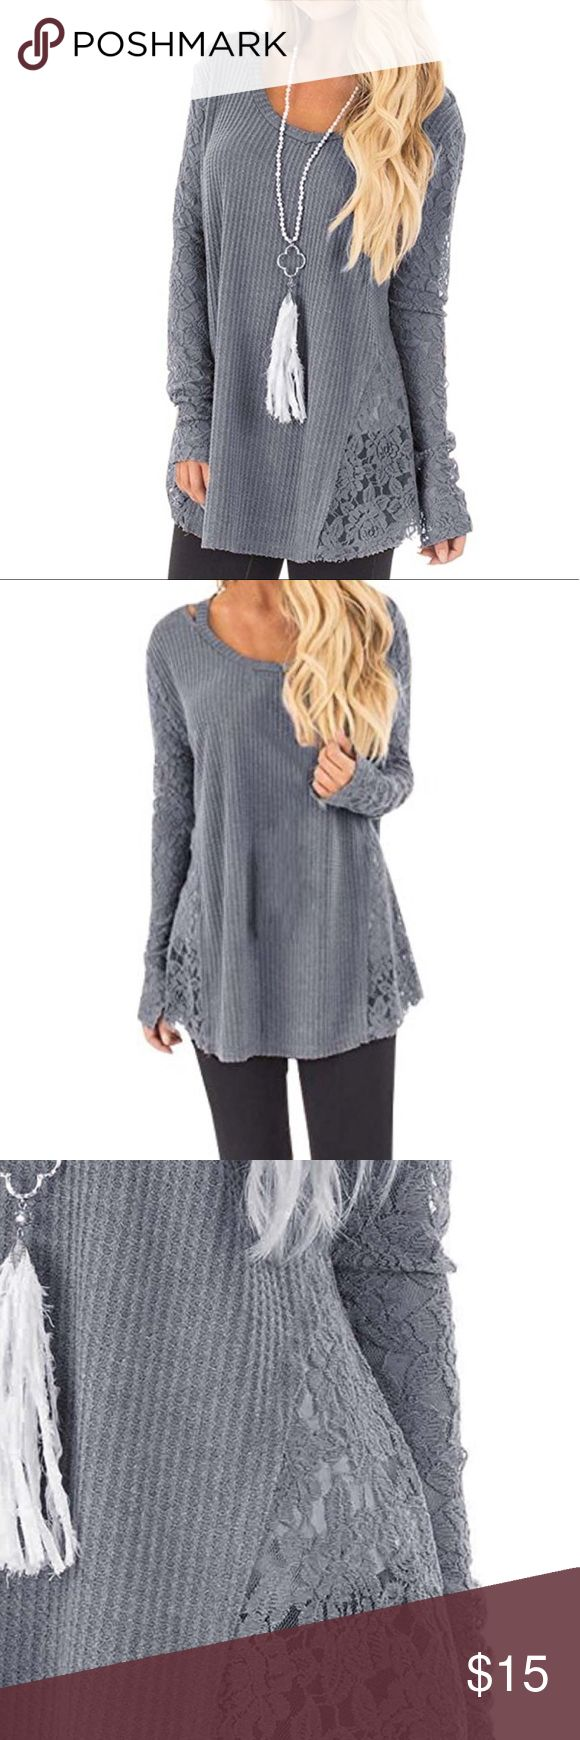 Women's long sleeve knitted crochet pullover top Blue/grey, lace detailing with cut outs on the neckline. Brand new, worn once! Great condition. FISACE Tops Tees - Long Sleeve